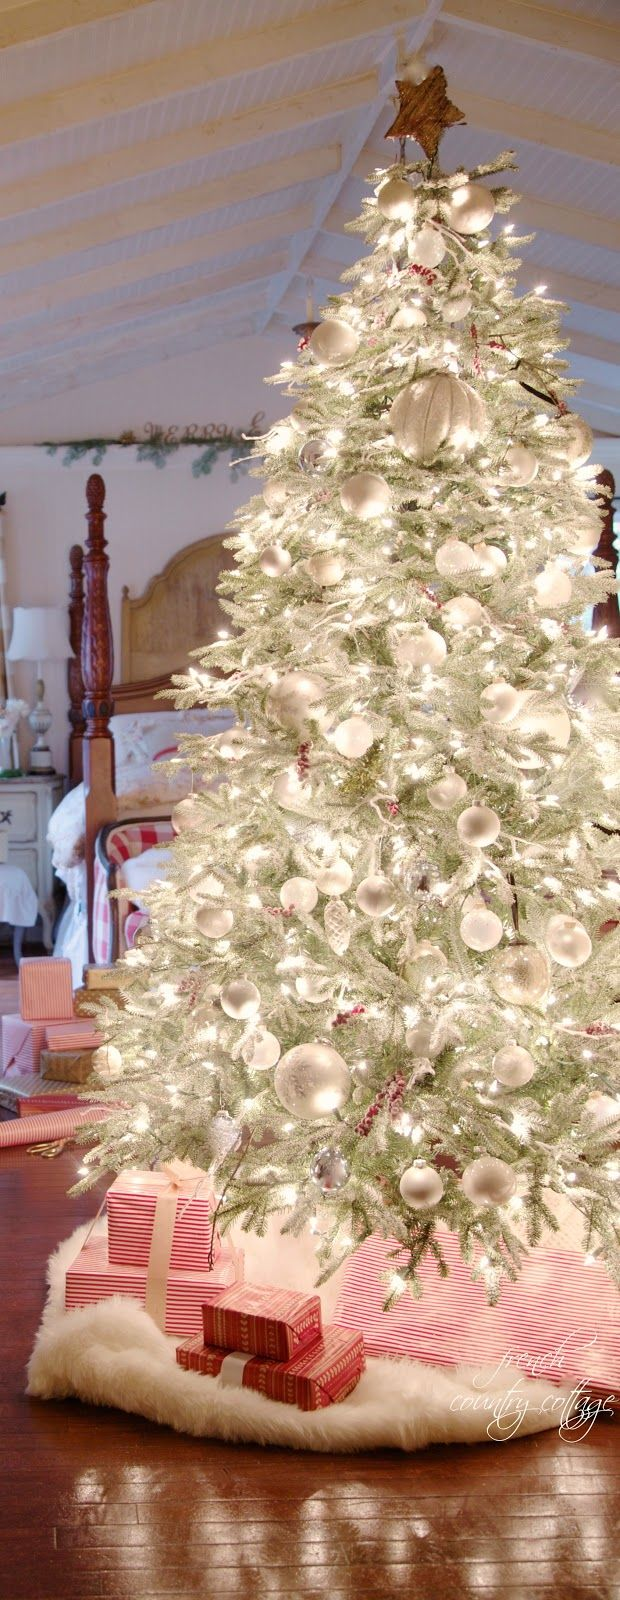 FRENCH COUNTRY COTTAGE: A very merry Christmas tree - this tree is absolutely stunning!: